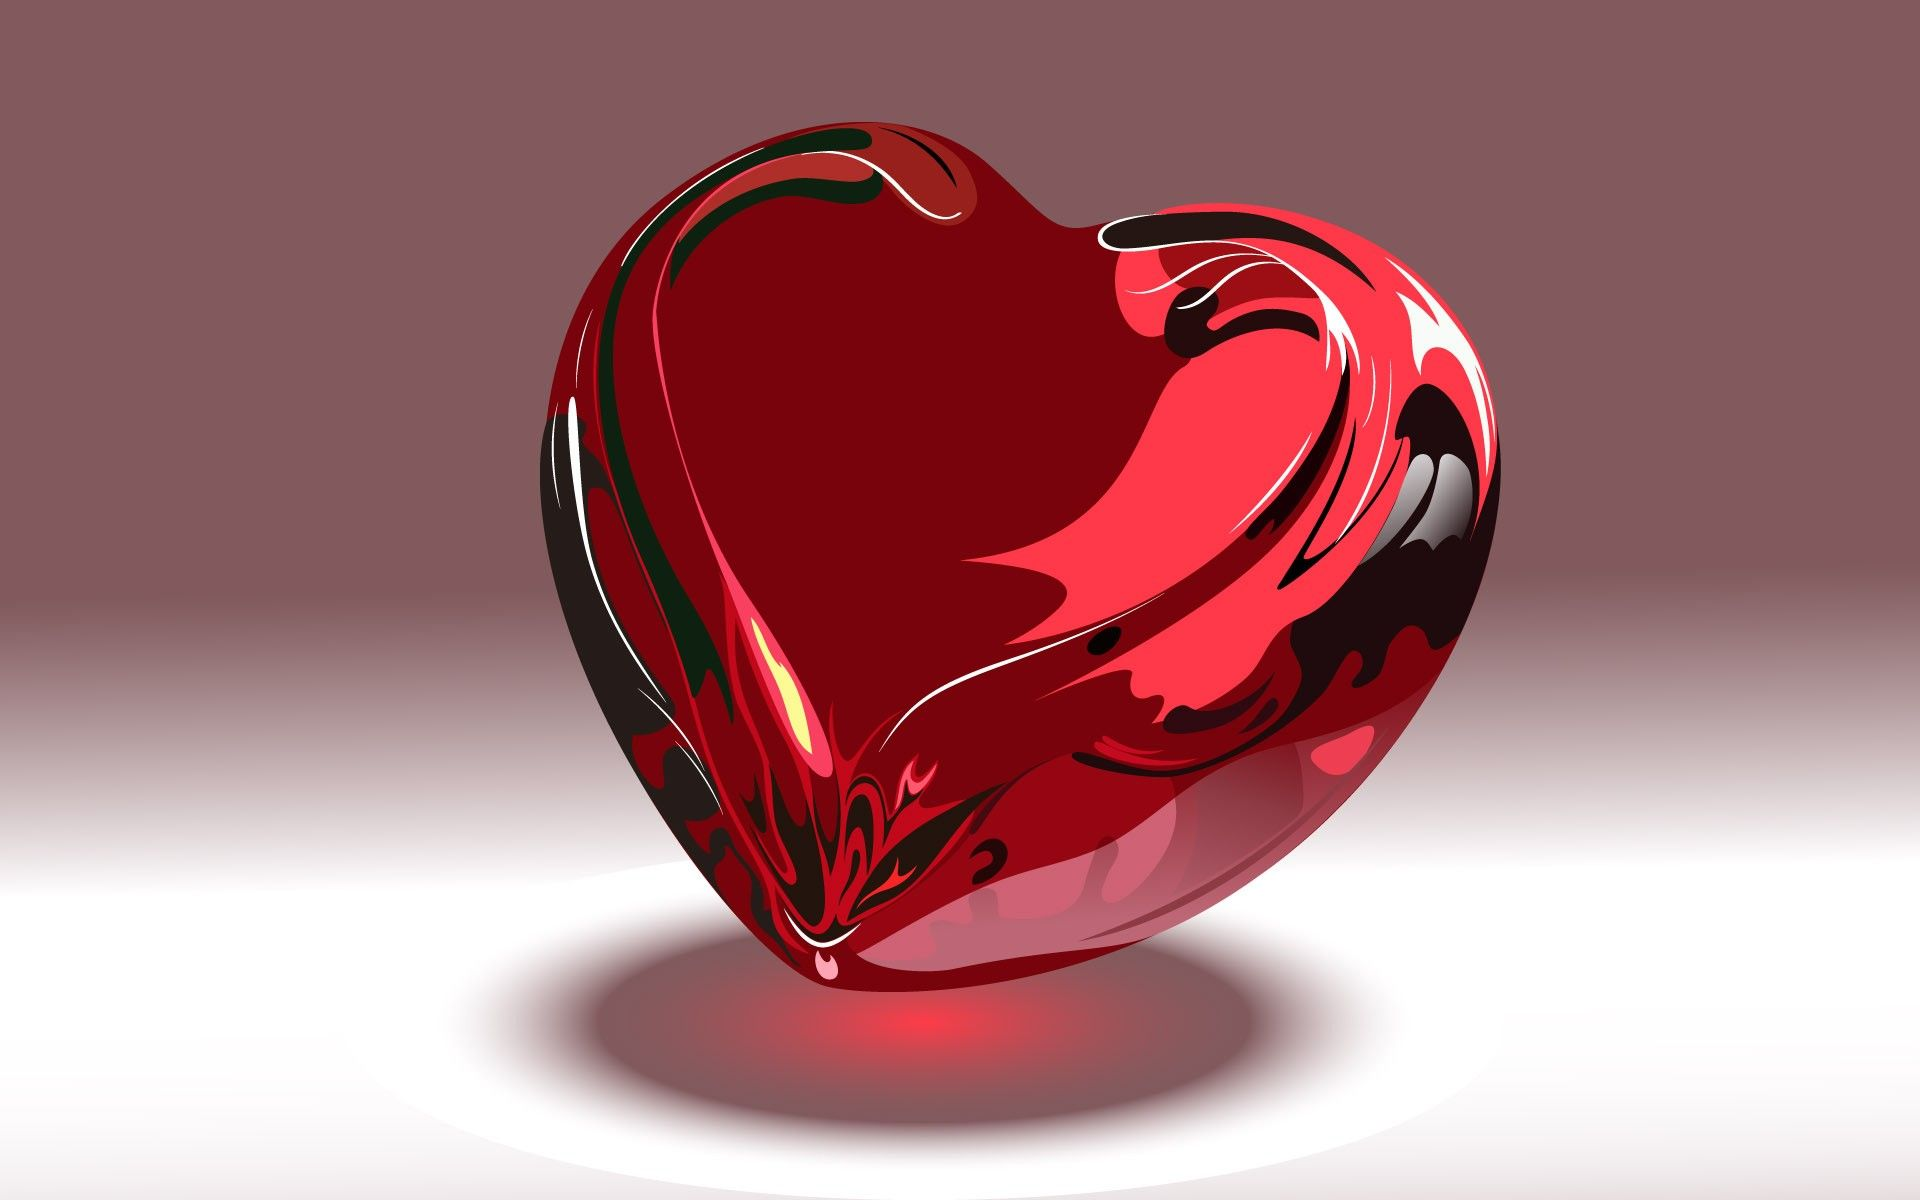 Image For Hd Wallpaper 3d Love Heart 150778 Image Heart